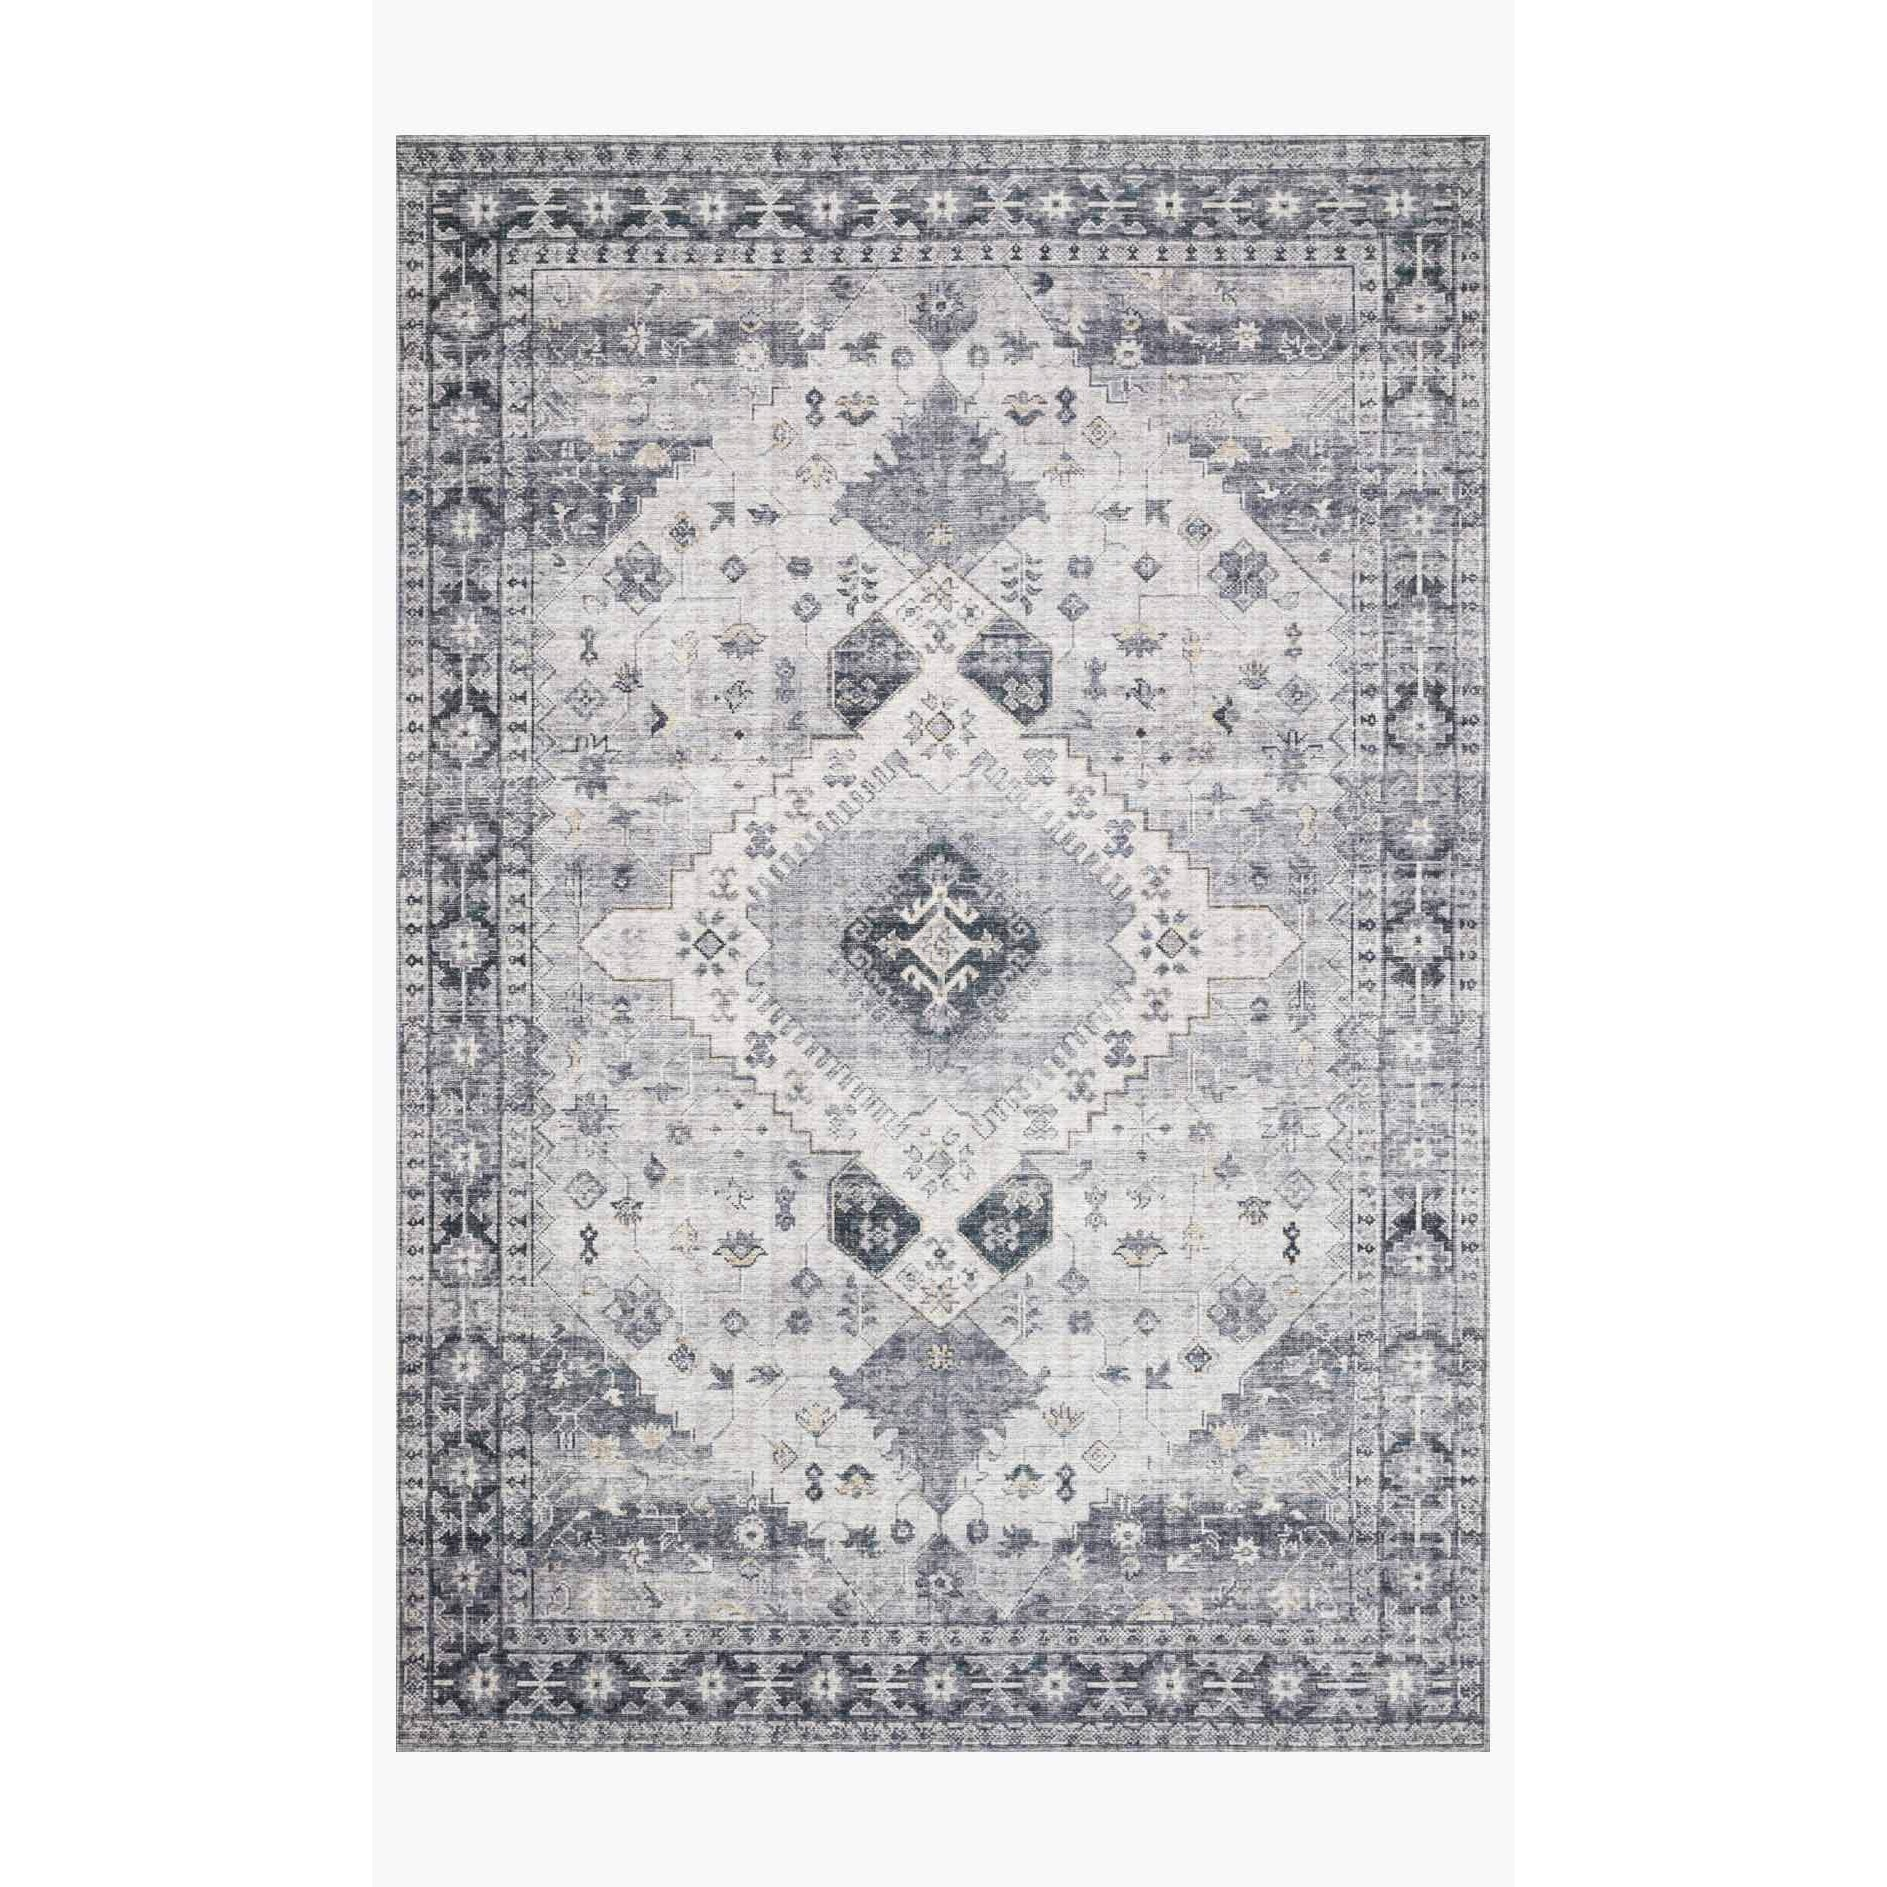 Skye Rug Collection by Loloi -Sky 02 Silver/Grey